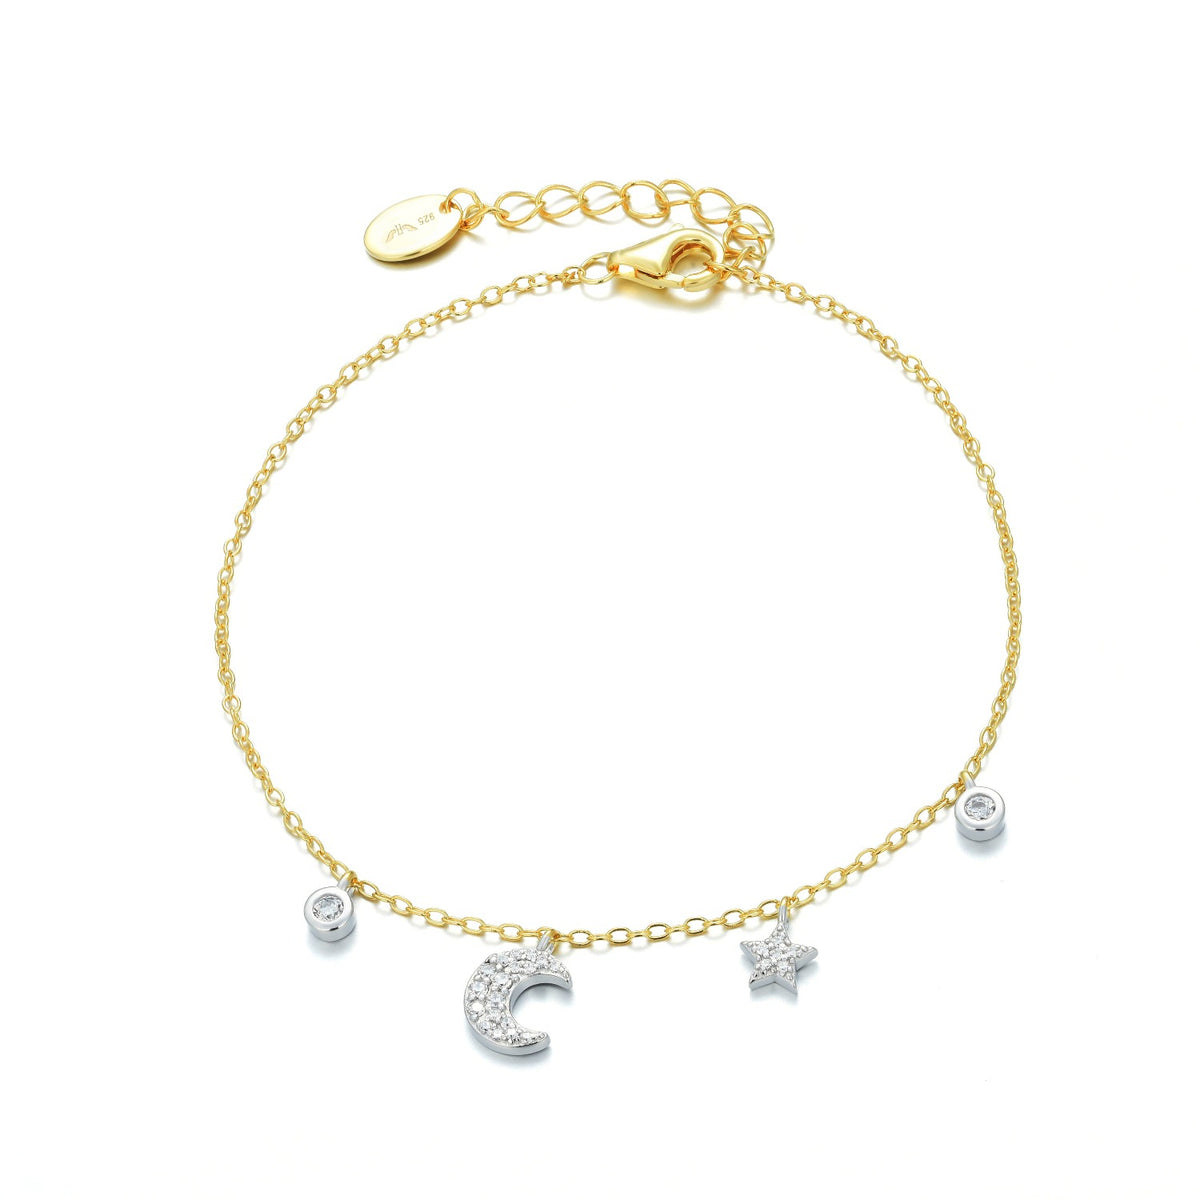 Fortuna | Ravenna Bracelet | 925 Silver | White CZ | White Rhodium and 18K Gold Plated